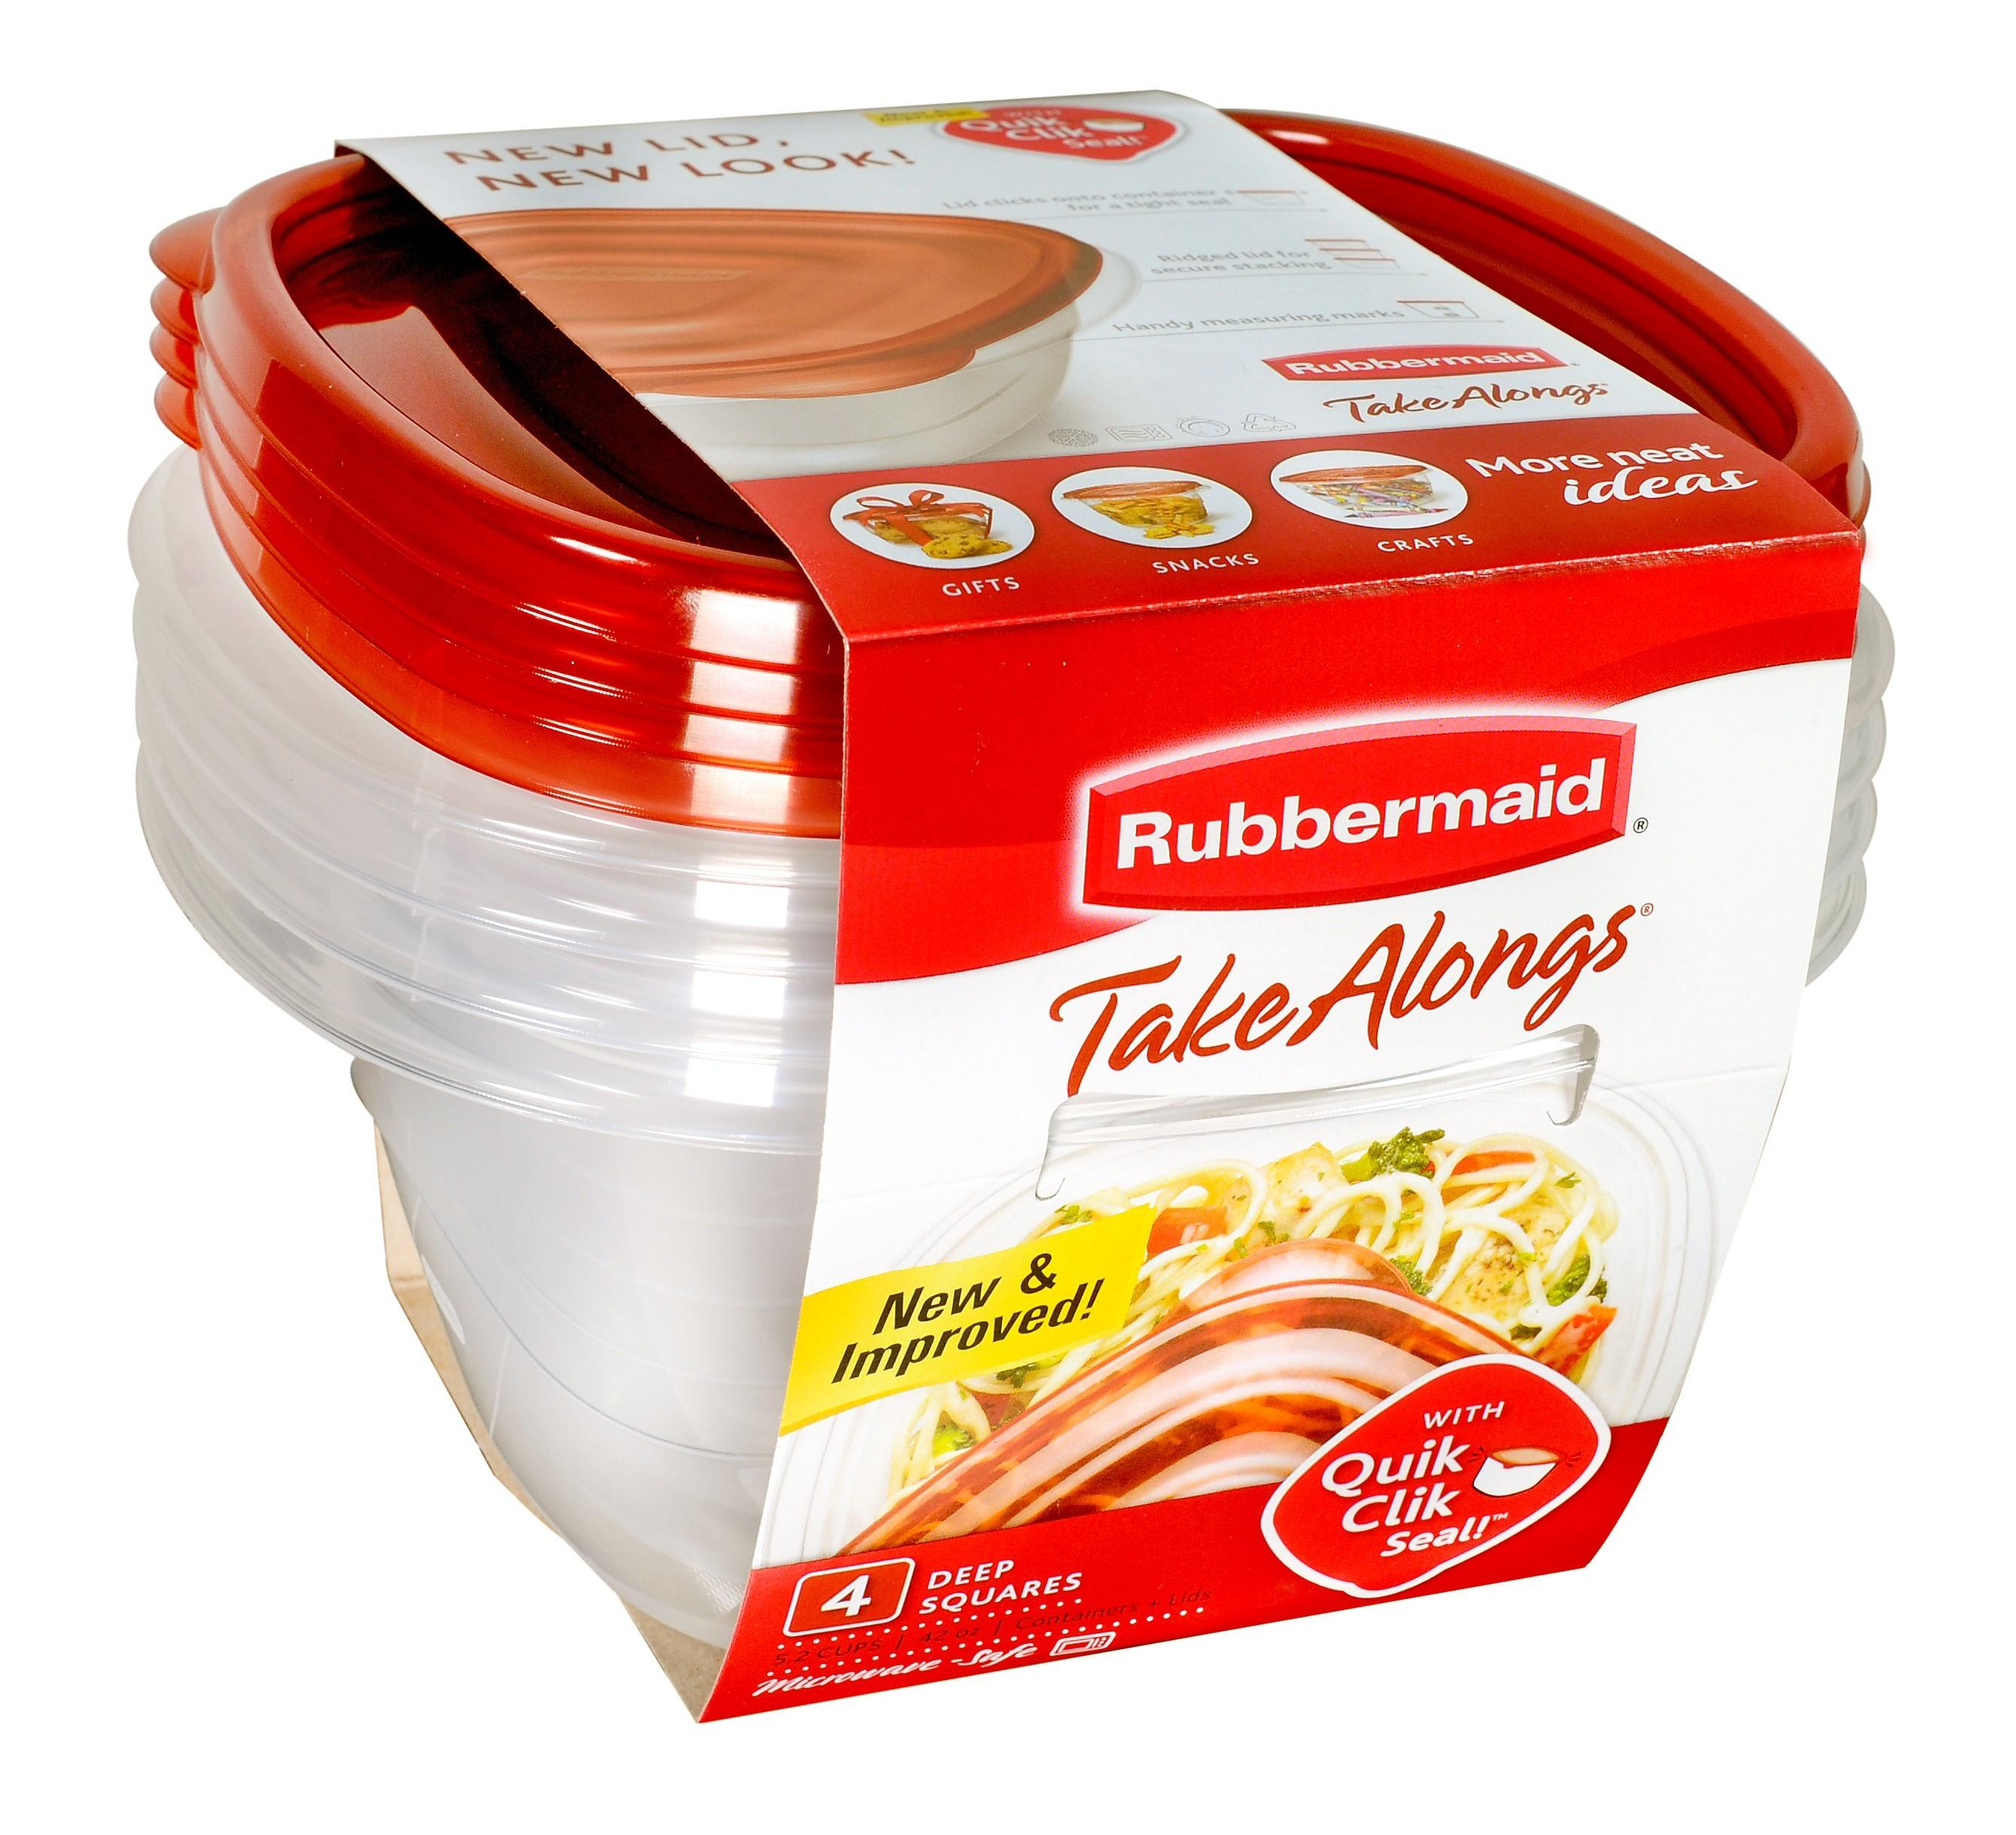 Inspirational Rubbermaid Kitchen Storage Containers Taste